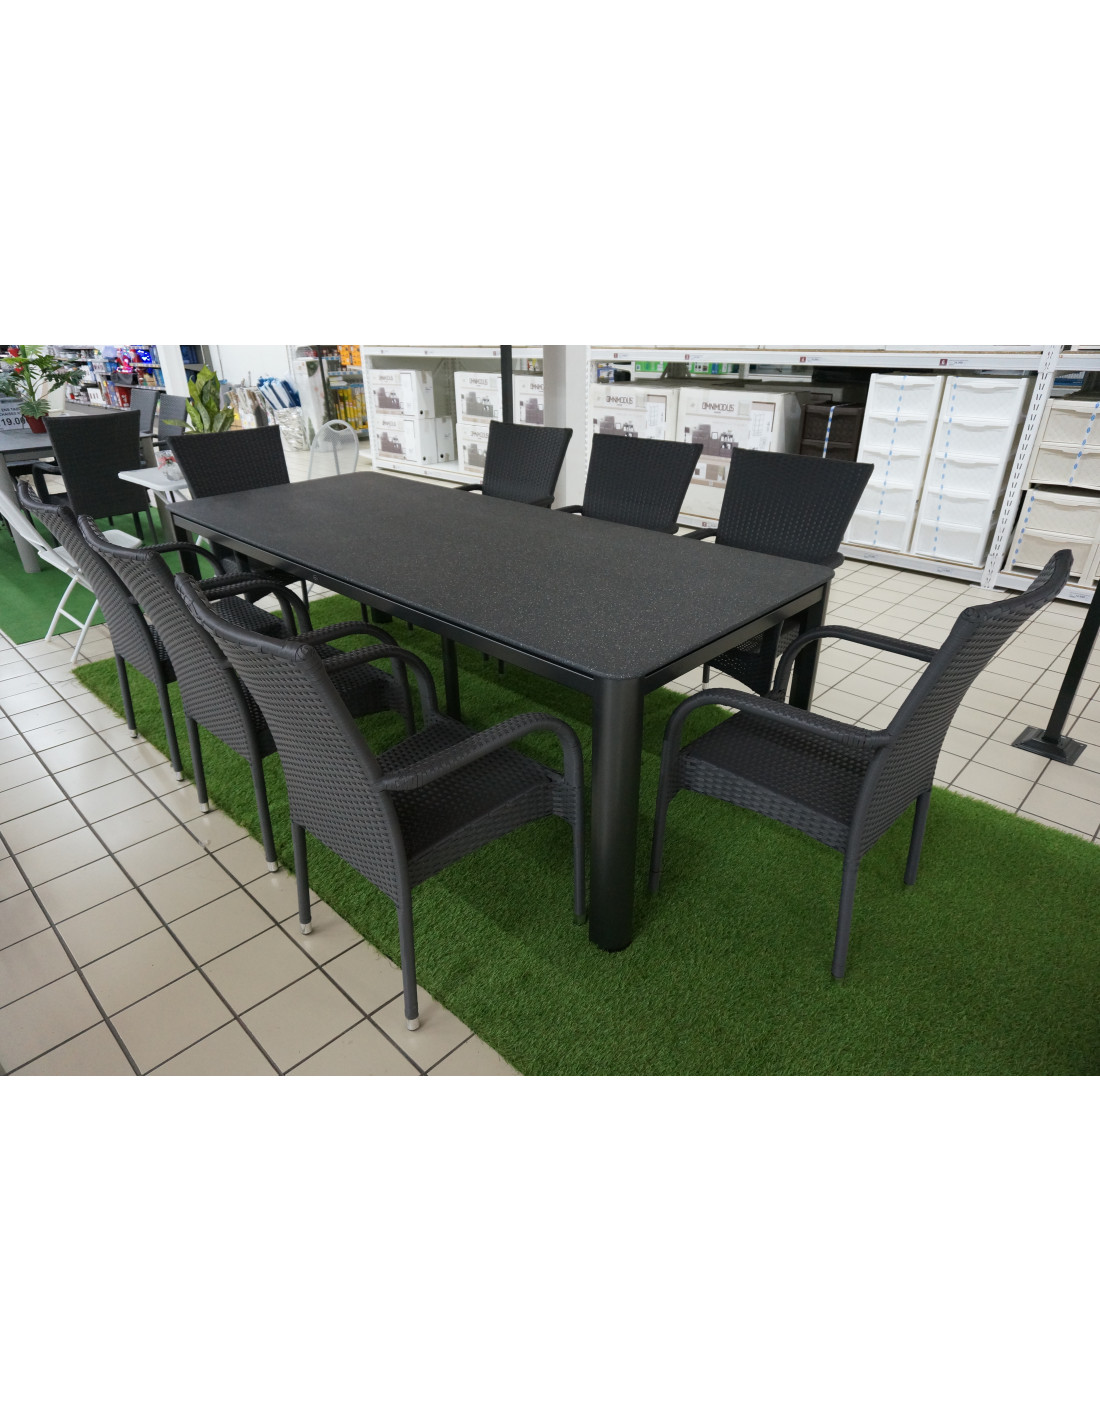 Brico Ensemble De Hyper Table Jardin Chaises Avec 8 v8nPymw0ON